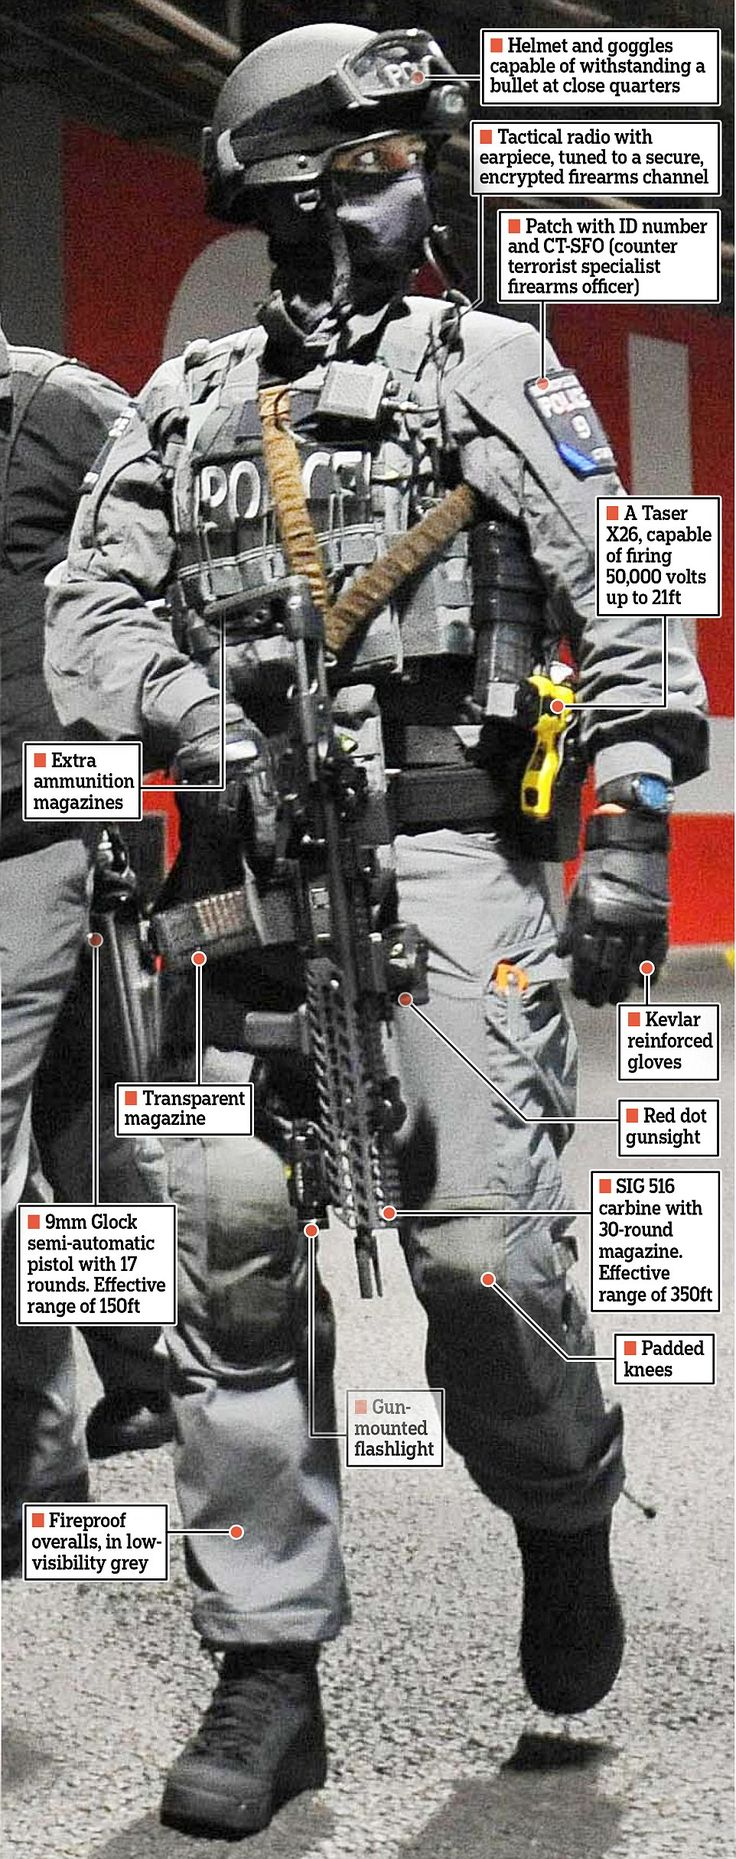 England vs France match sees new counter terrorist police in military fatigues | Daily Mail Online